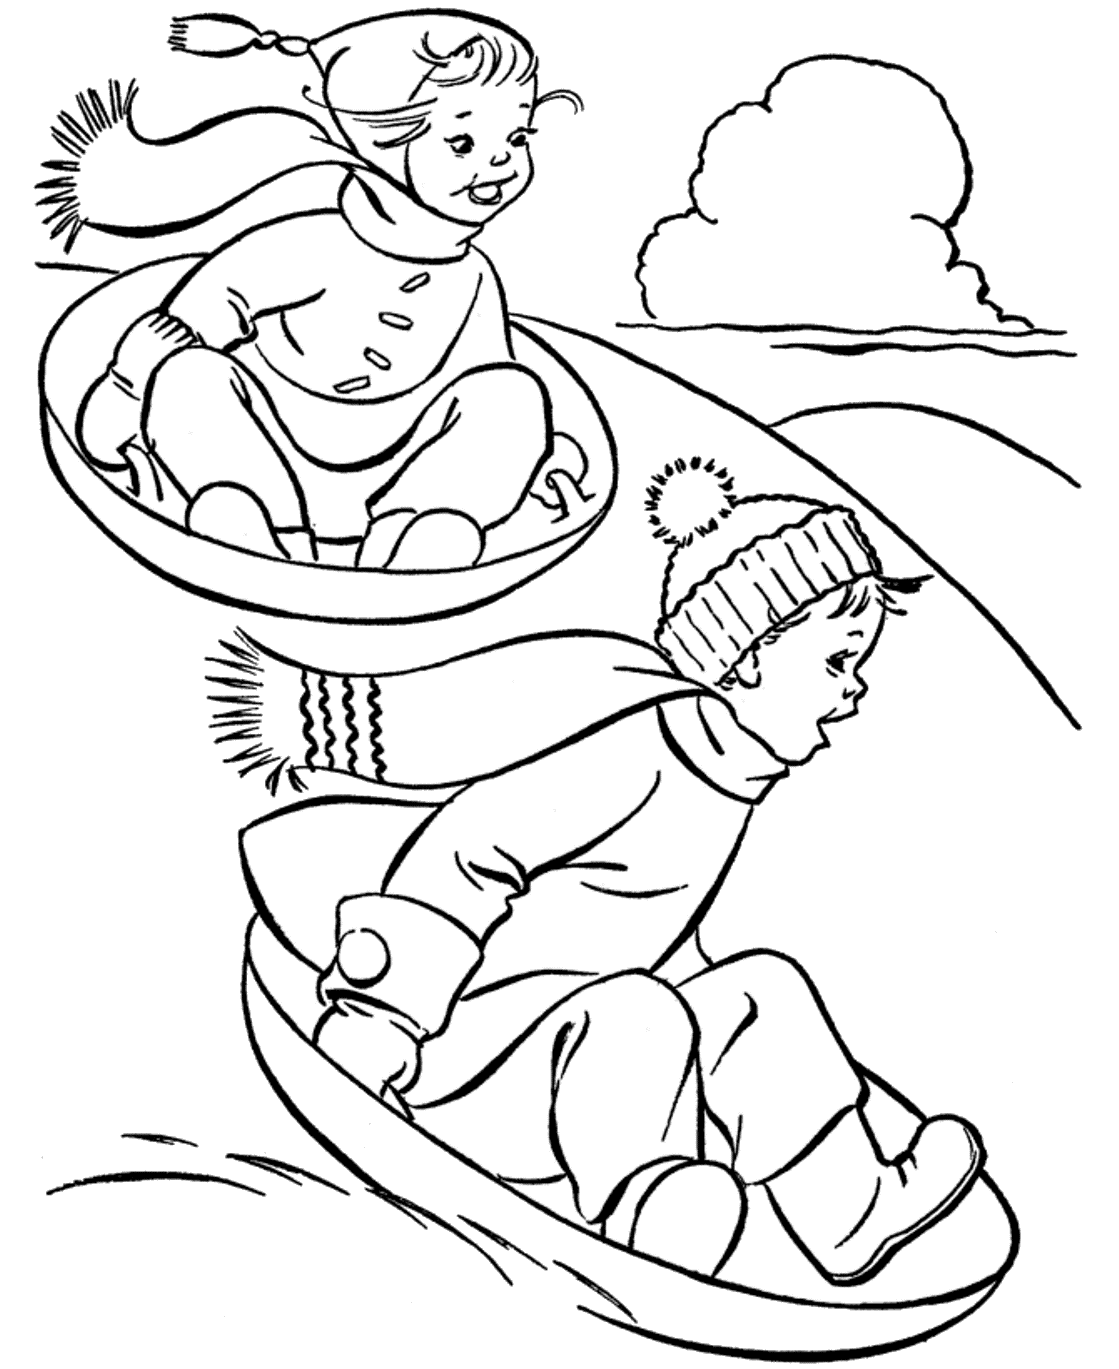 winter coloring pages sports photograph coloring pages kids winter sports pages coloring winter